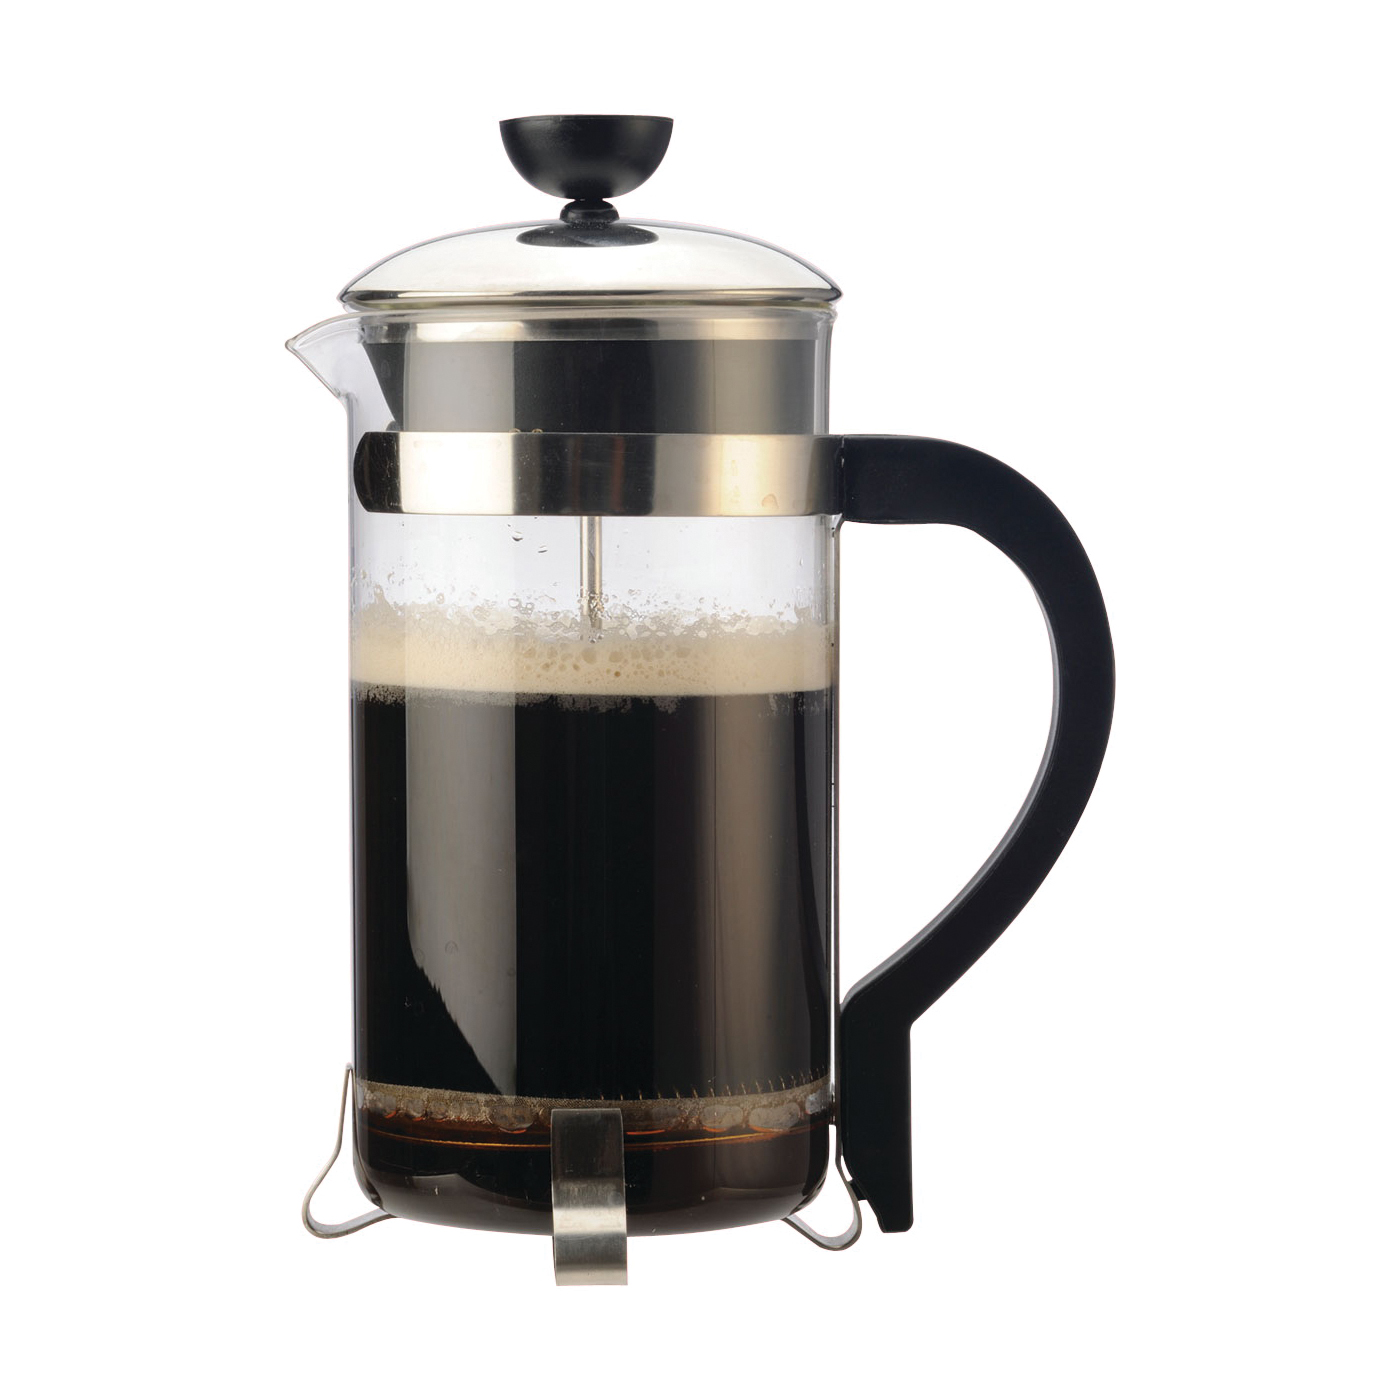 Picture of Primula PCP-6408 Coffee Press, 8 Cups Capacity, Borosilicate Glass/Stainless Steel